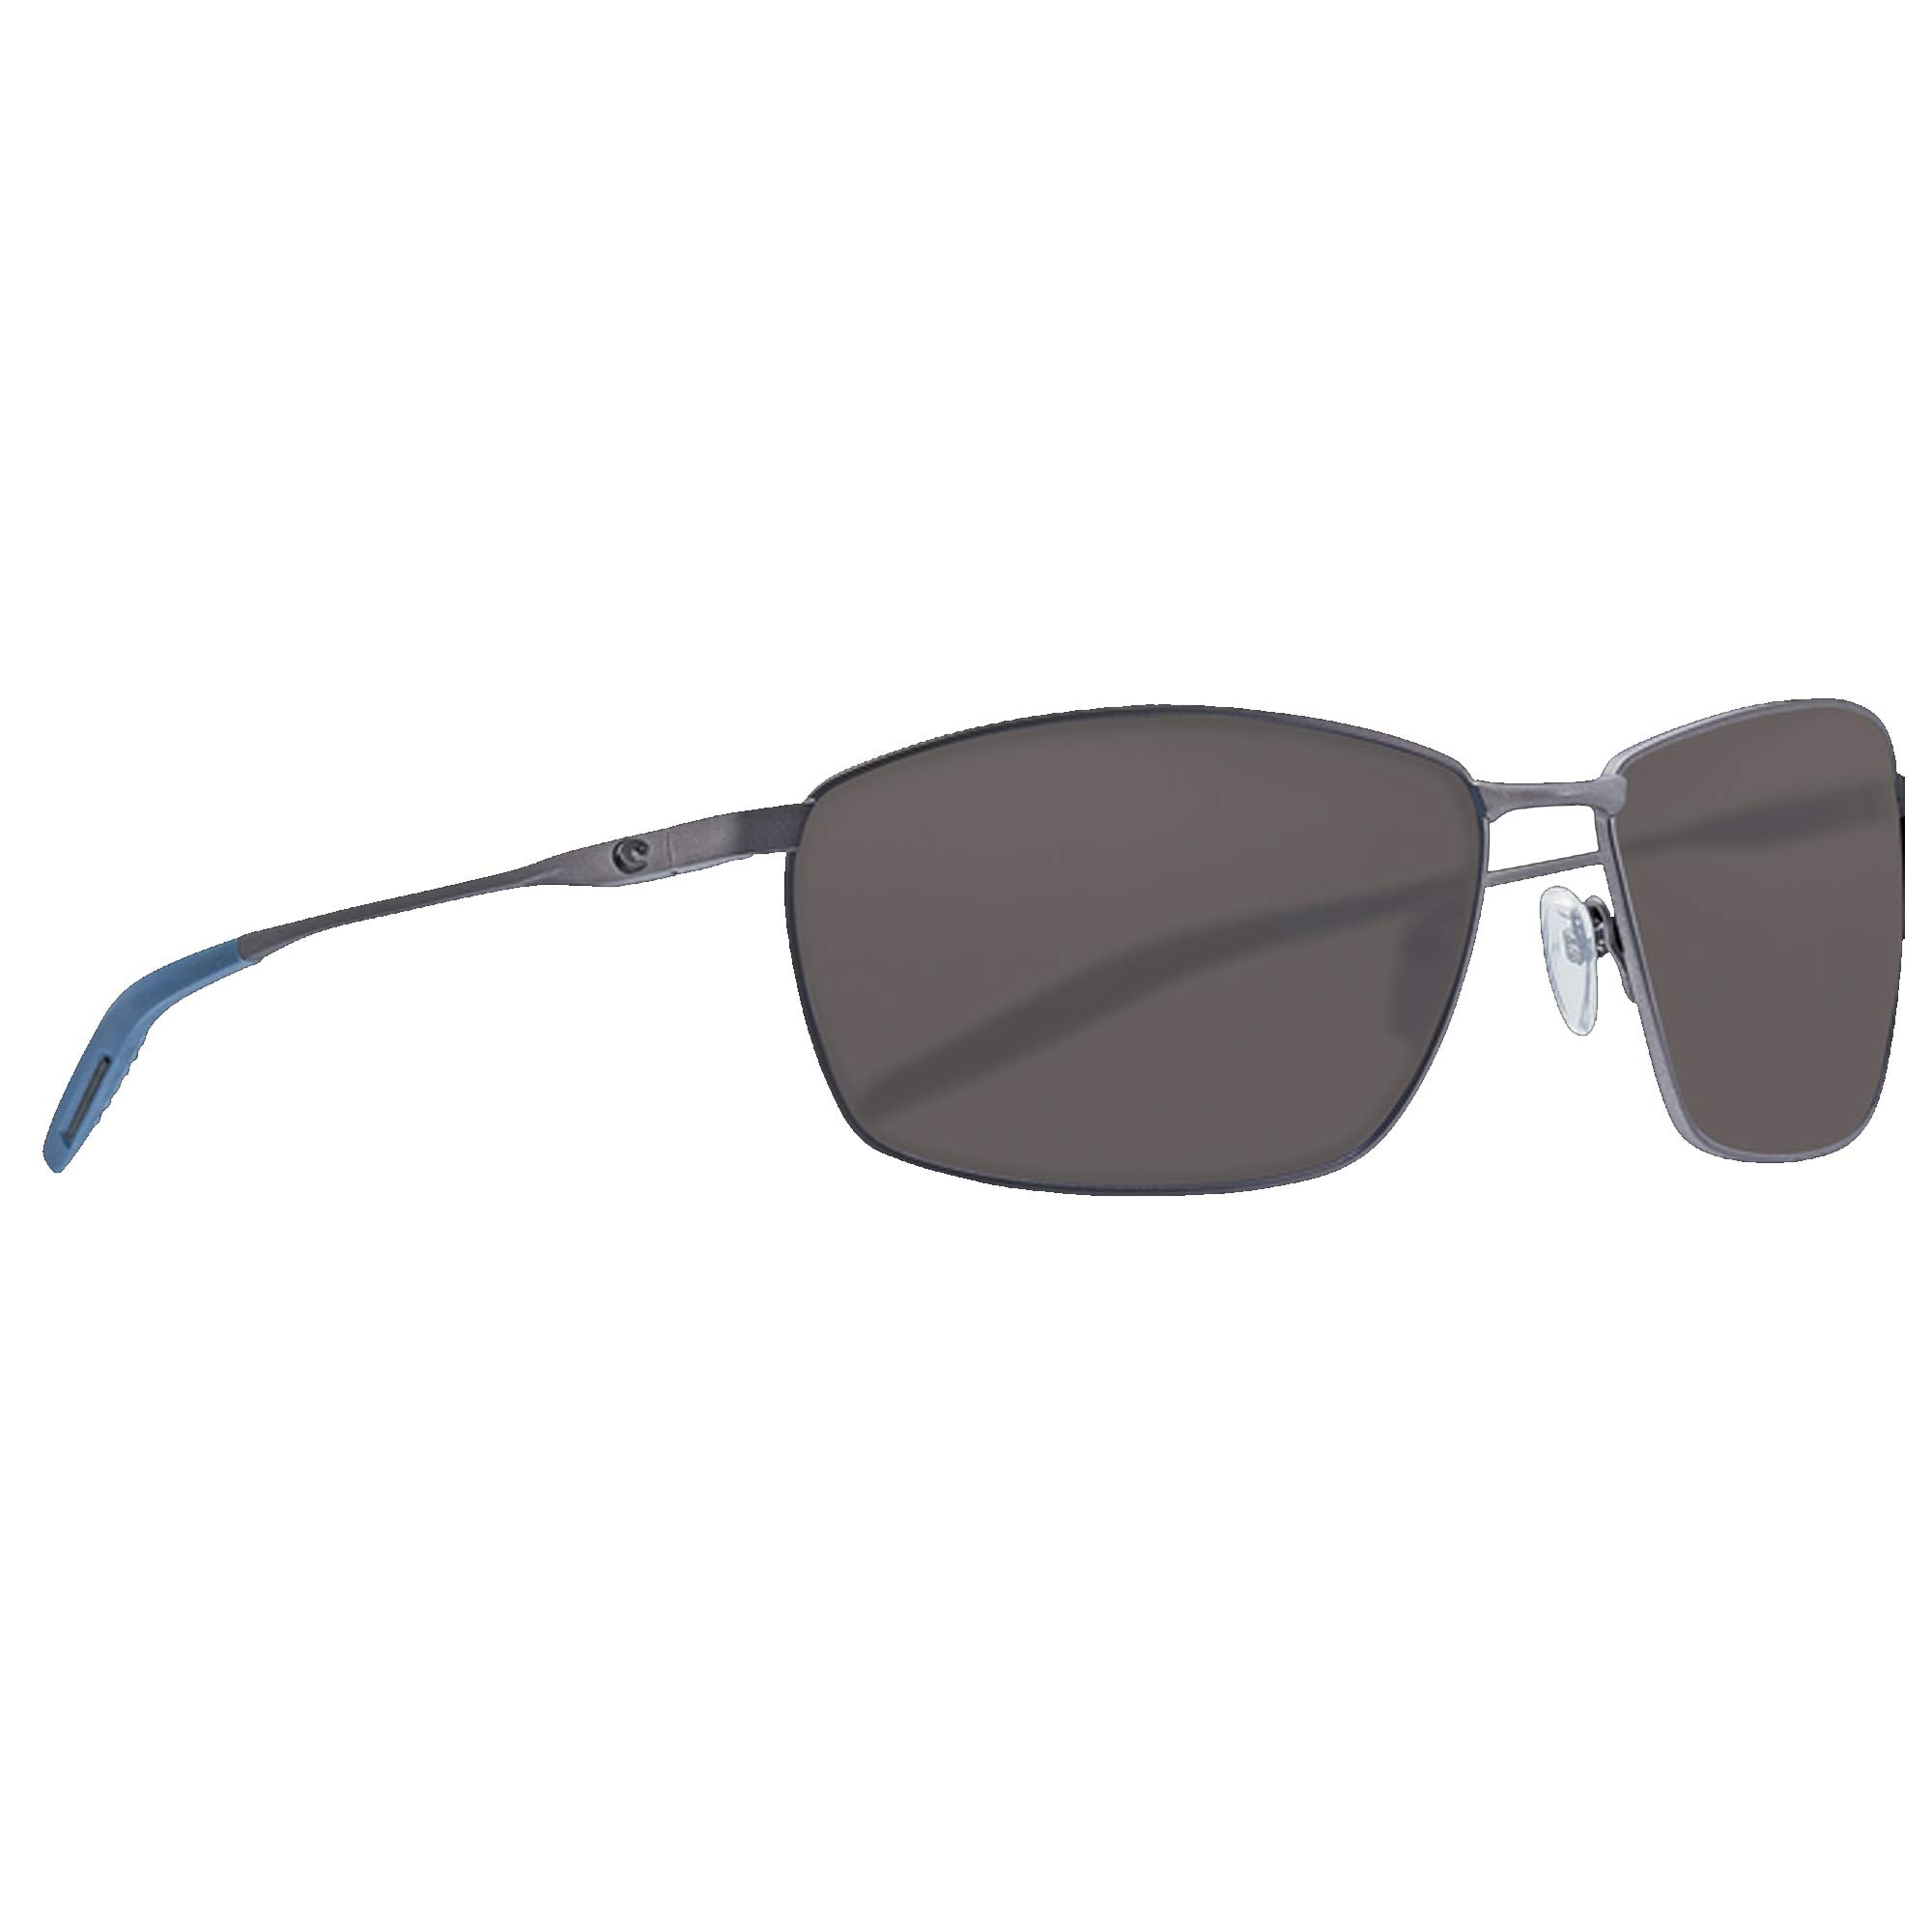 Costa Del Mar - Turret - Matte Dark Gunmetal Frame-Grey 580 Poly Polarized Lenses by Costa Del Mar